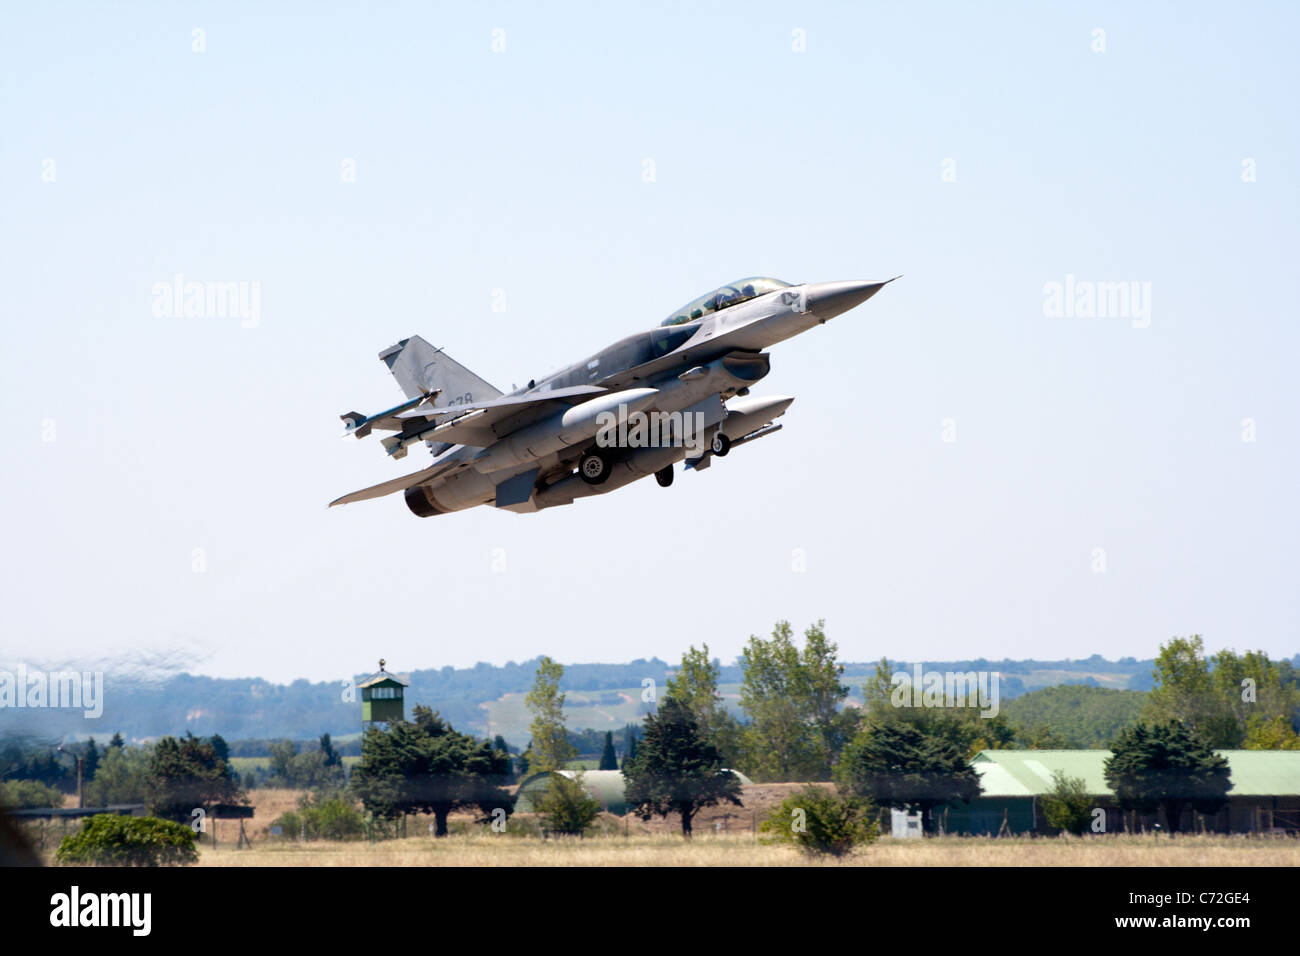 Singaporean Air Force F-16's take off from Orange airbase in France during an exercise in 2010 - Stock Image